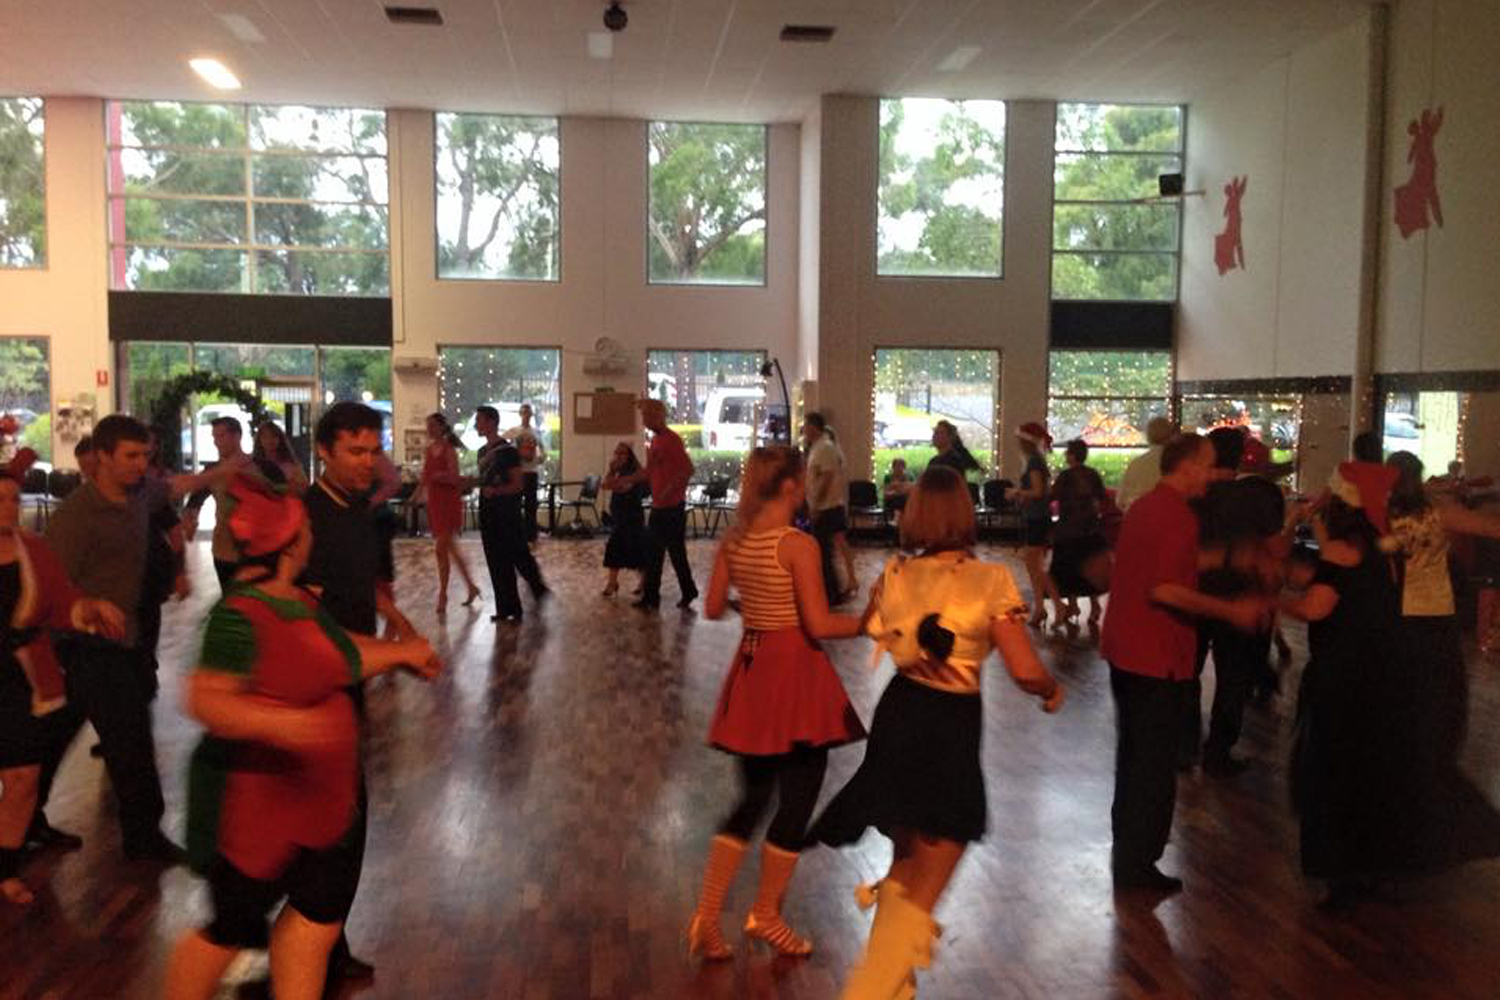 Adult and Teen social dance classes